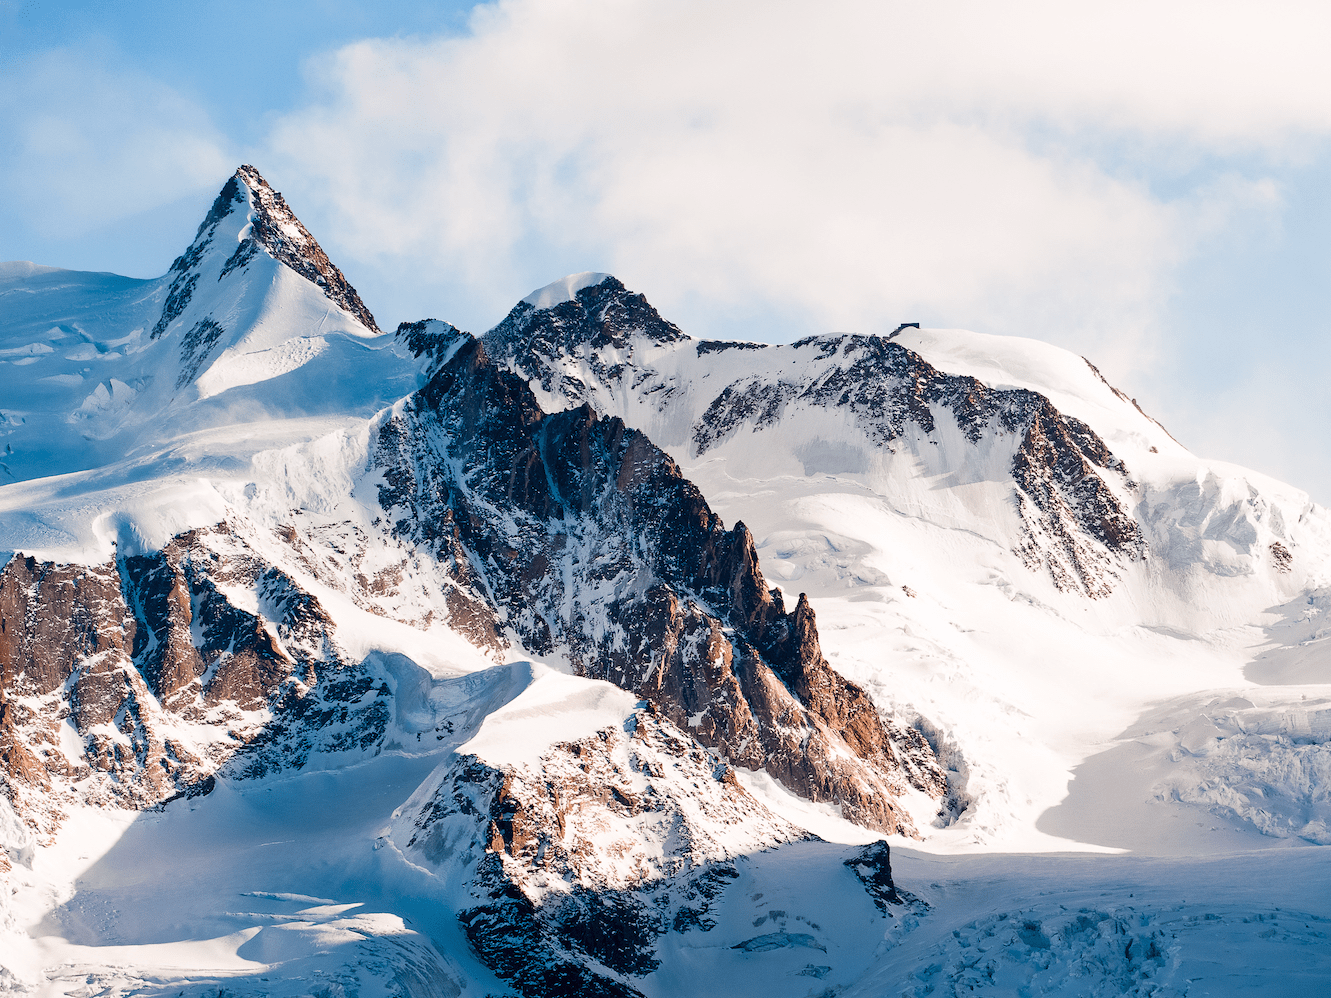 The Alps run through much of Switzerland, and the country's highest peak is the Dufourspitze, which is part of Monte Rosa, a group of mountains that sit on Switzerland's border with Italy.